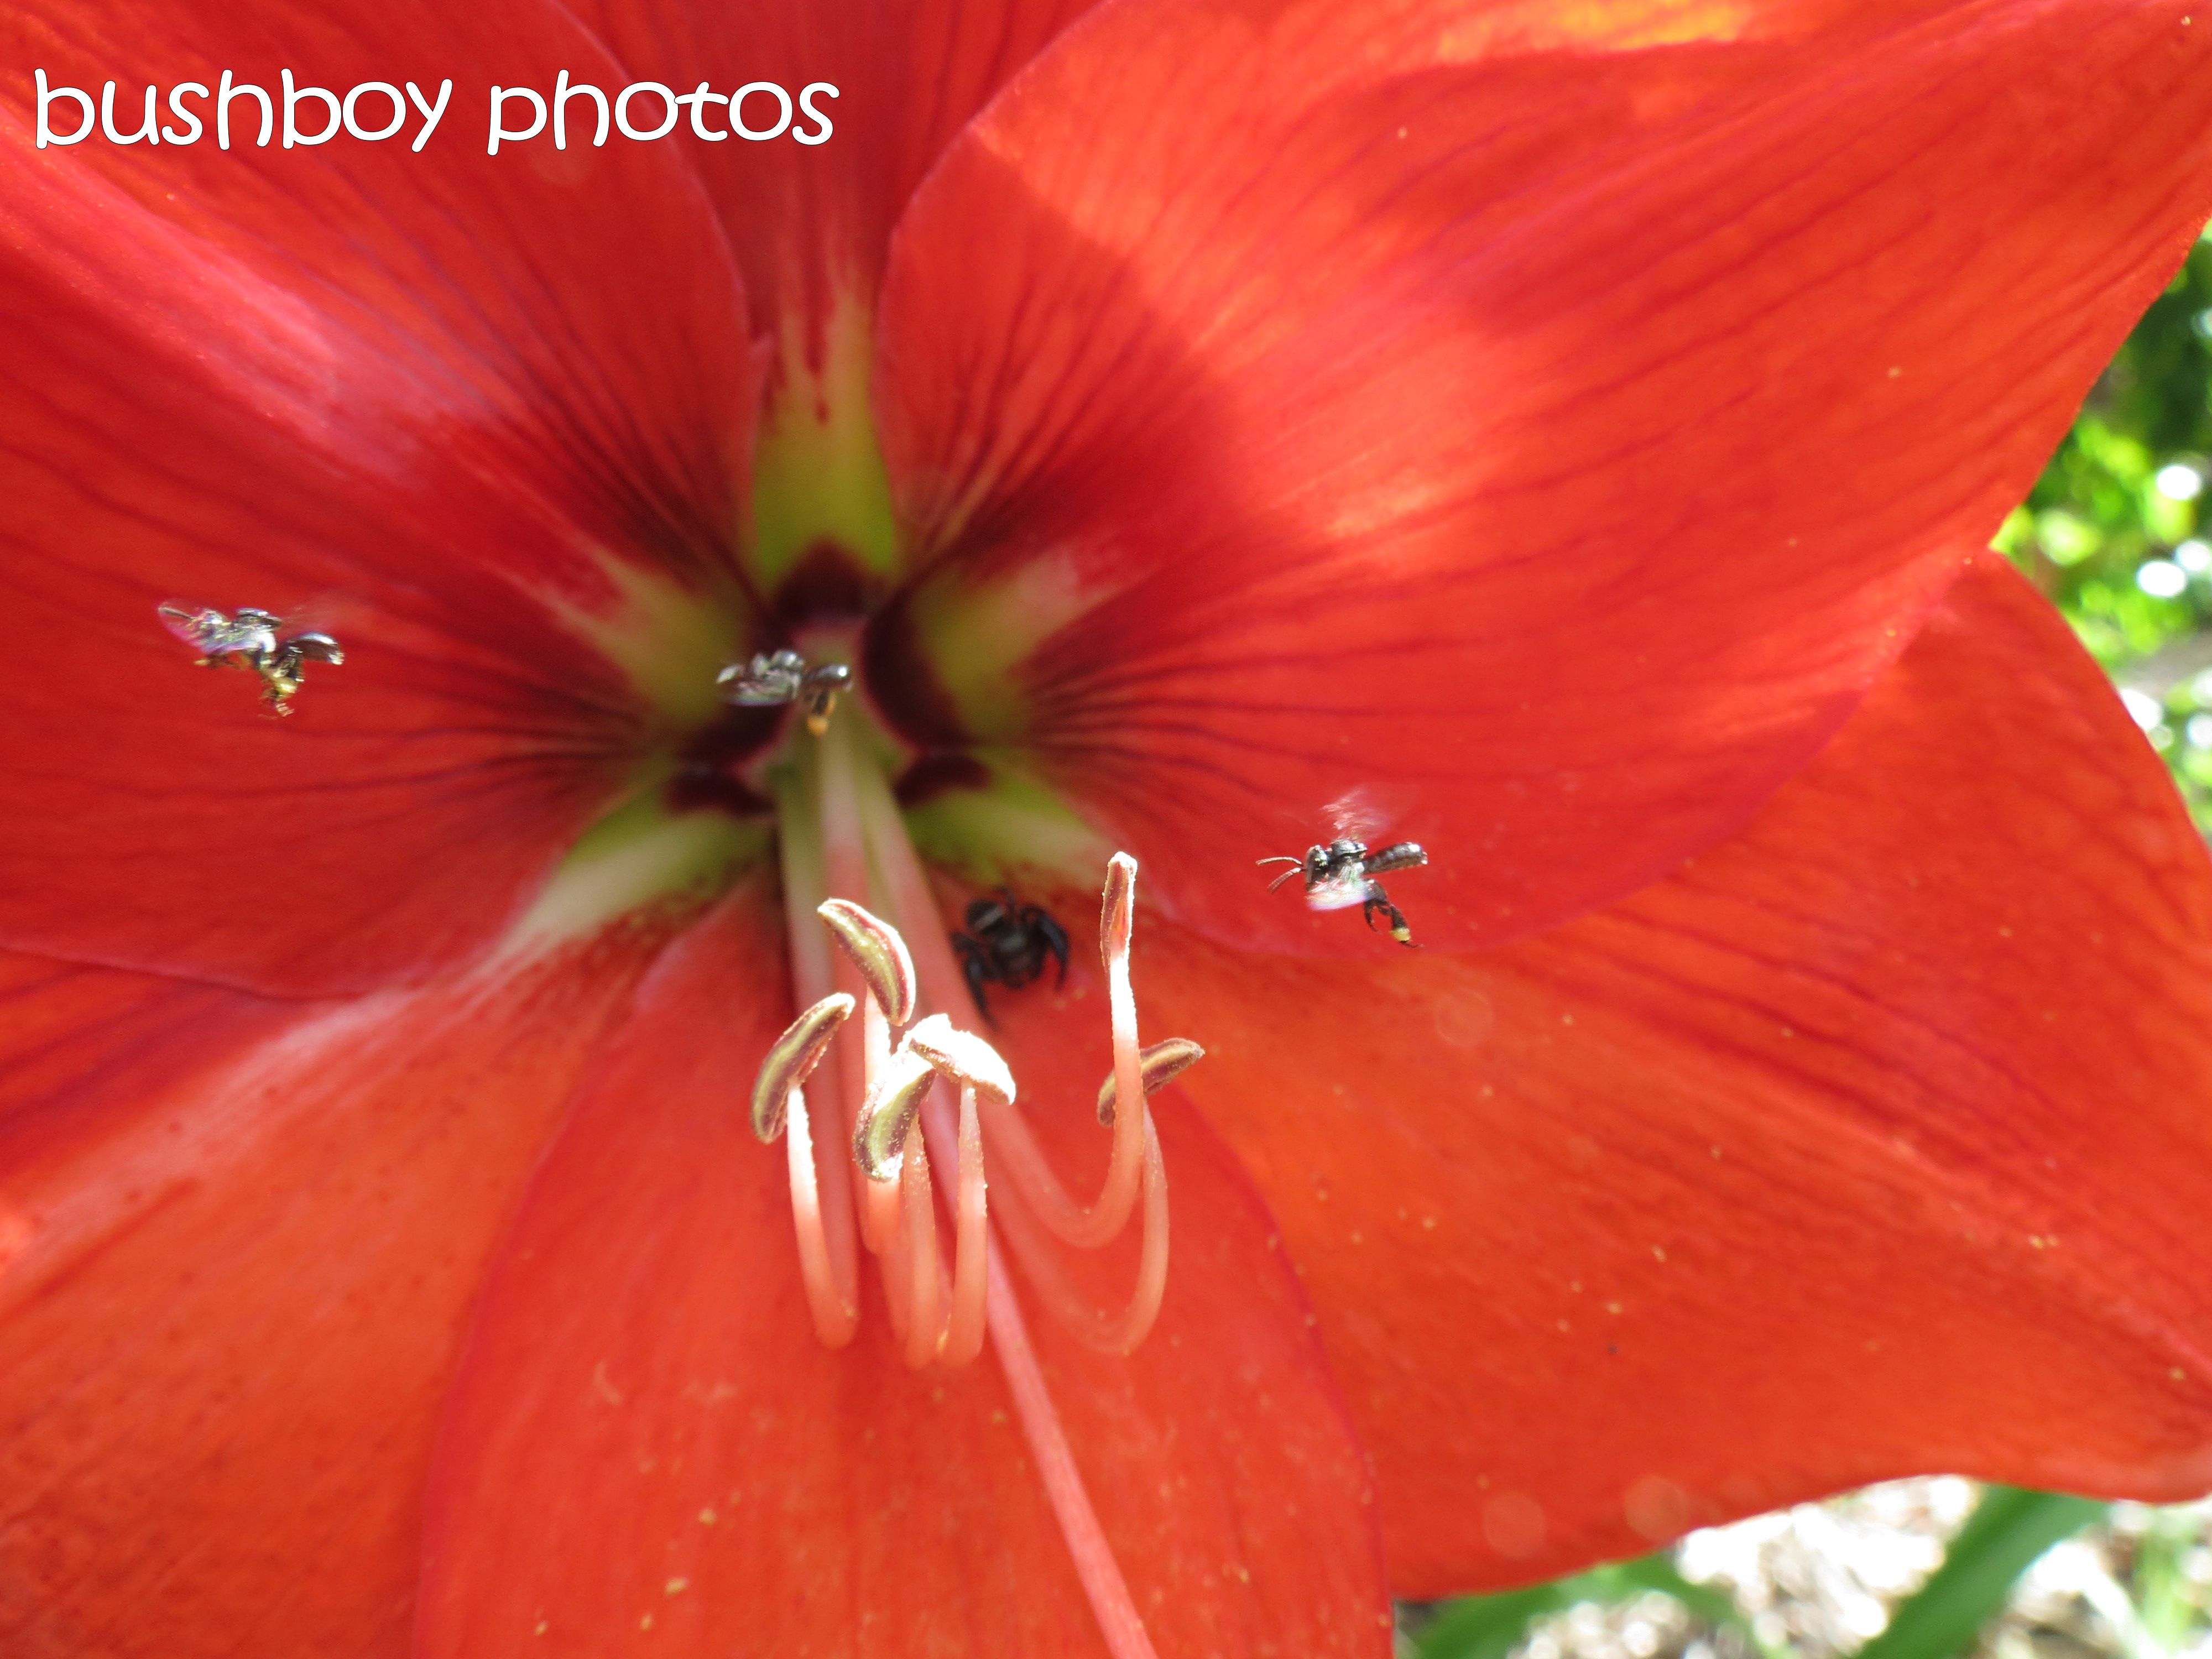 the hippeastrum_the bee_the spider_named_home02_oct 2015